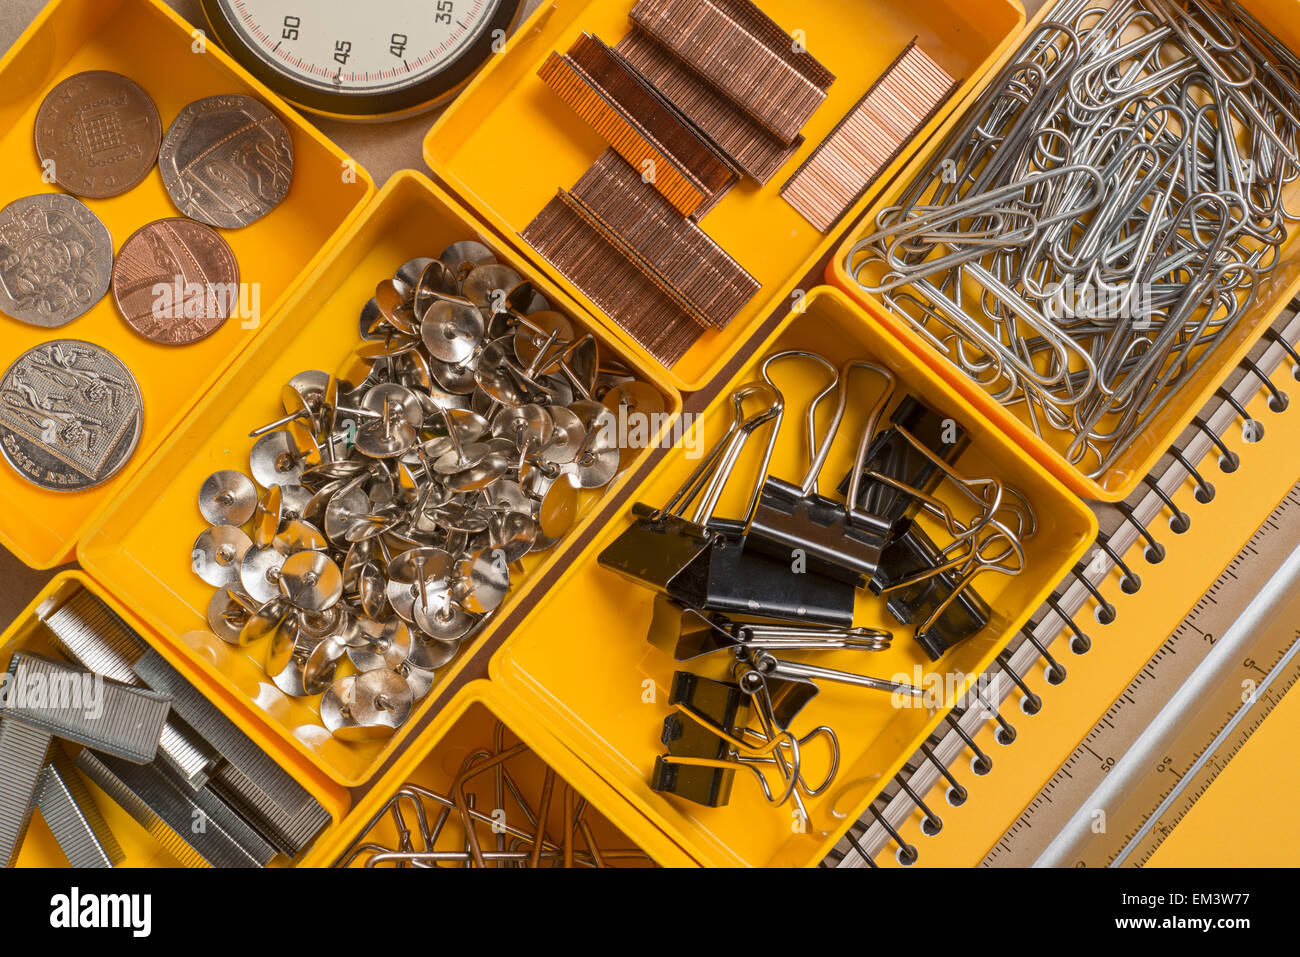 A group of items typically found in a office desk - Stock Image